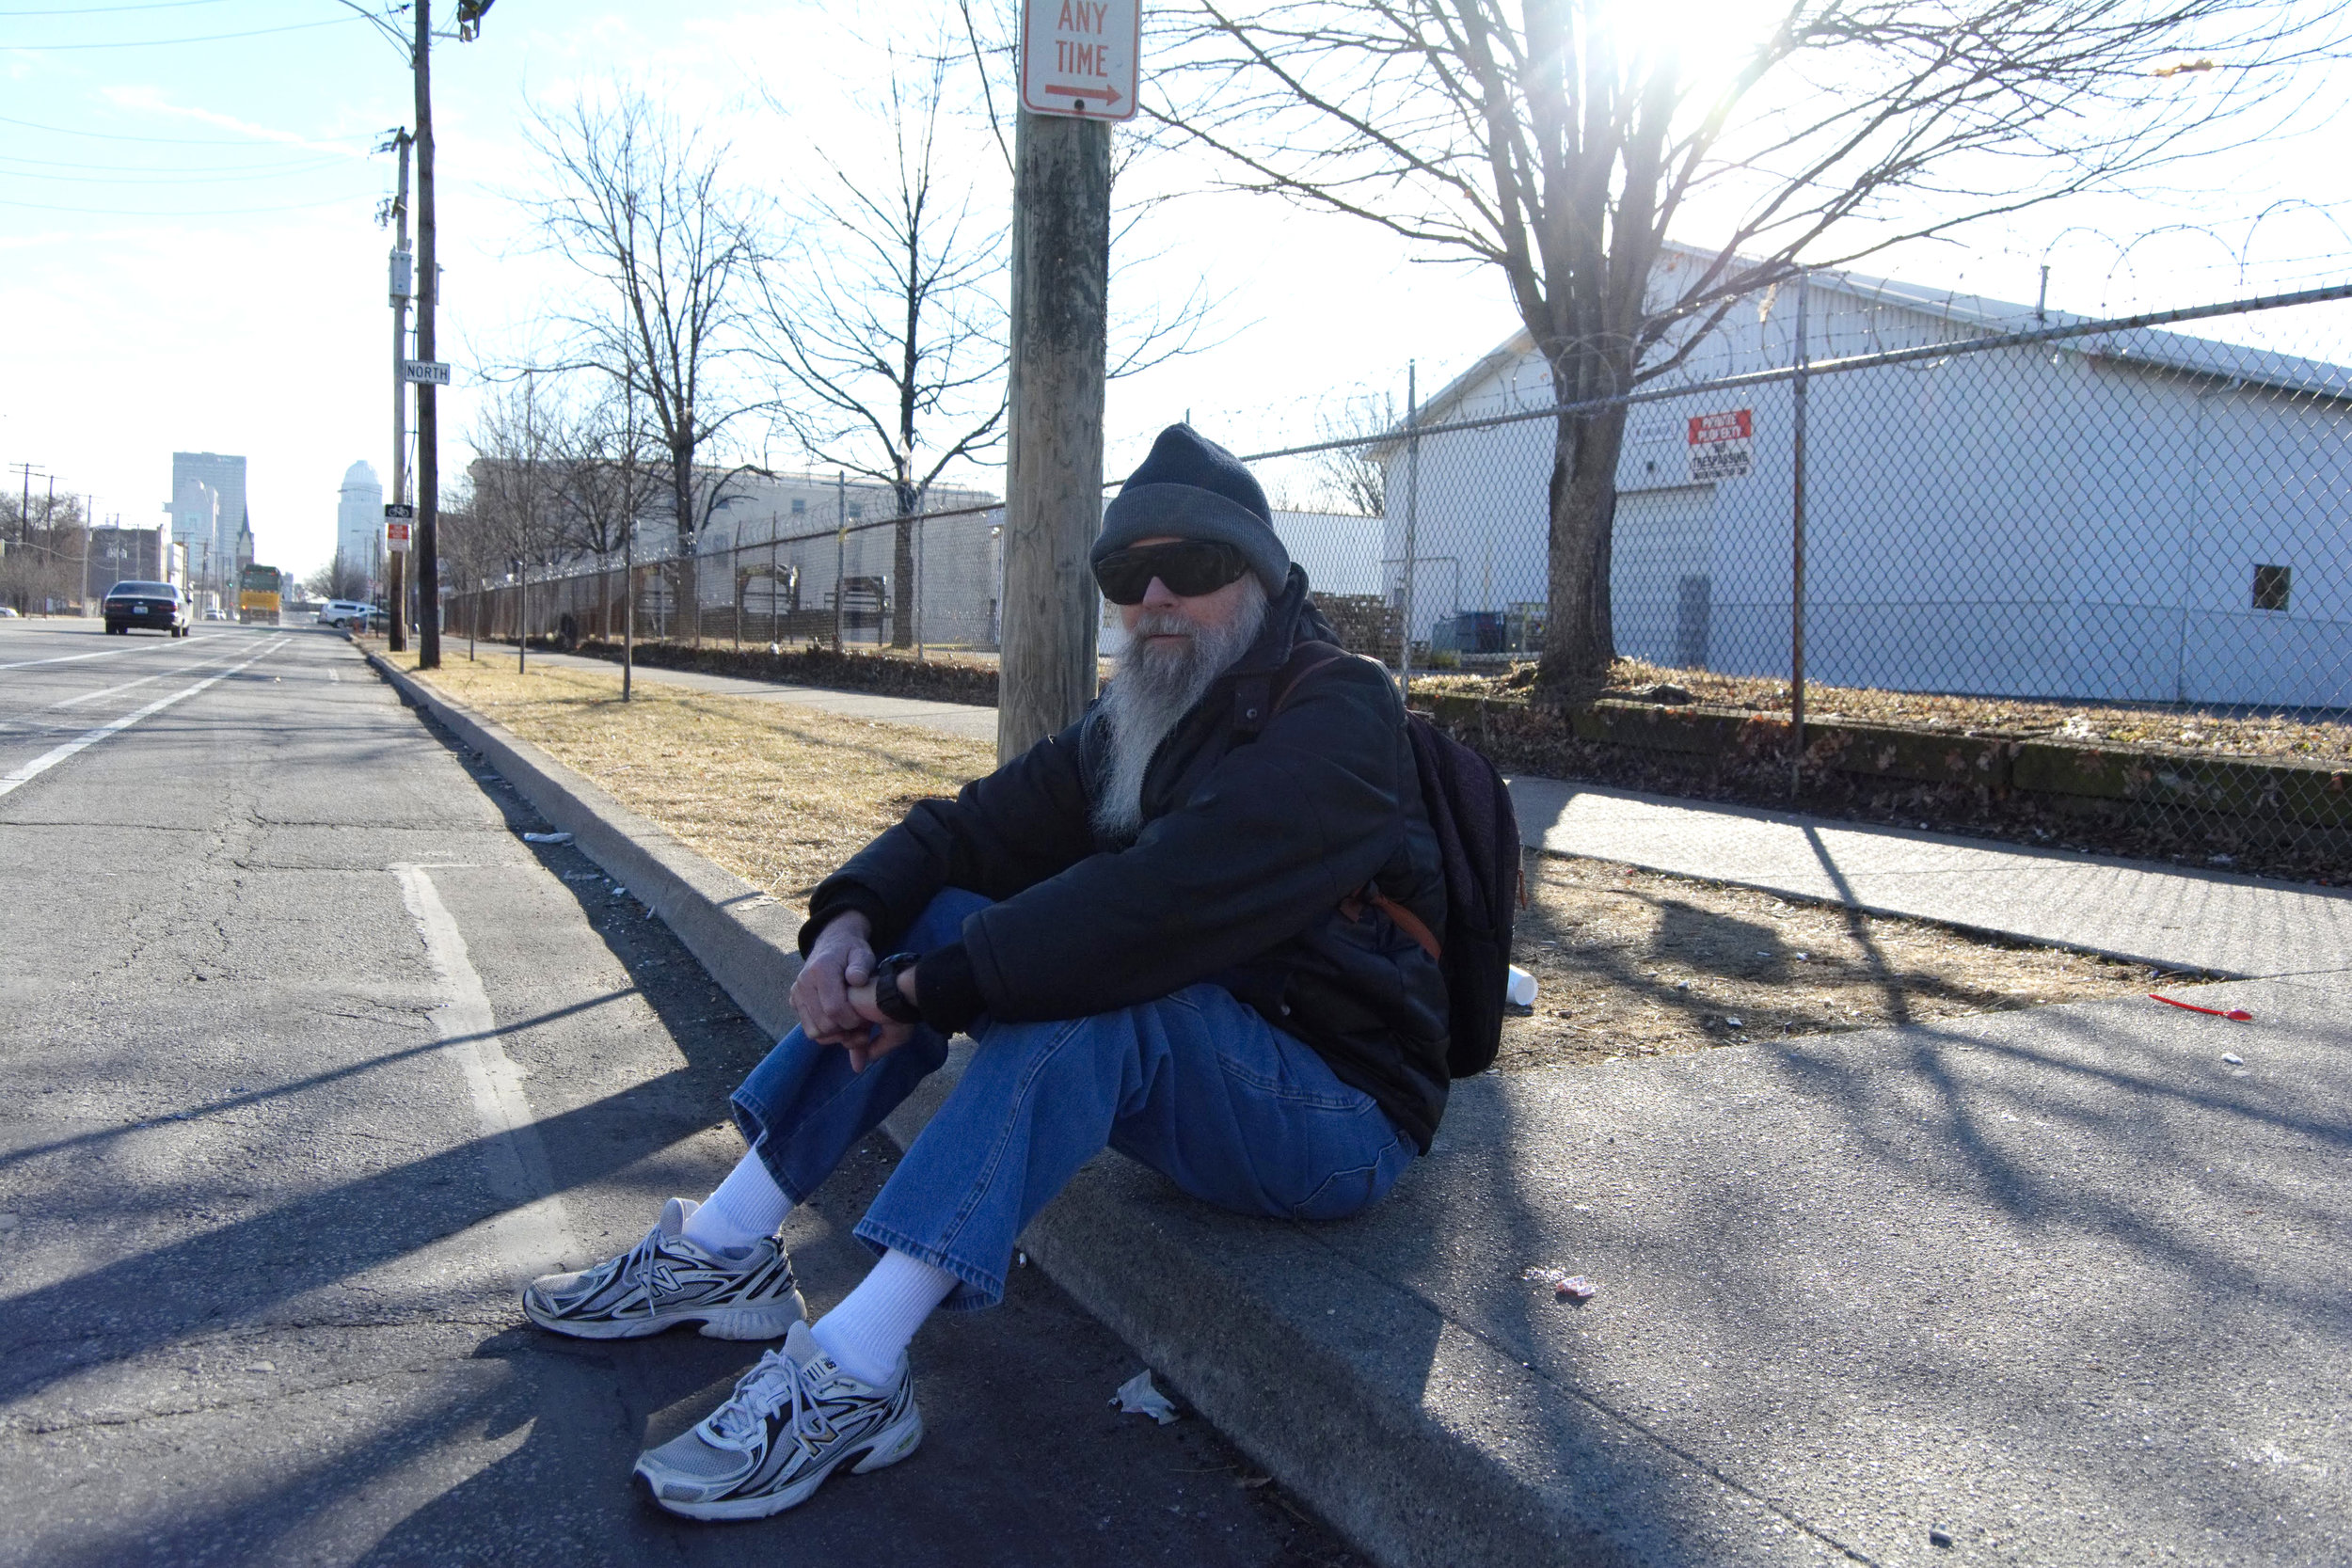 """""""We need more stores in this area. You know, somewhere where we can get some quality stuff.We got a million Dollar Stores but we need better stores for a better shopping experience. That would be the biggest improvement that I can think of. Also, they need to fix the sidewalks and streets to make them a little better.  My advice to the world is to let things go. If something bothers me, I just tell myself to get over it and move on. There's other stuff to do besides being angry and depressed. Drop all of that and move on. Find something to do and not something to sit on."""" - Dave, Russell"""